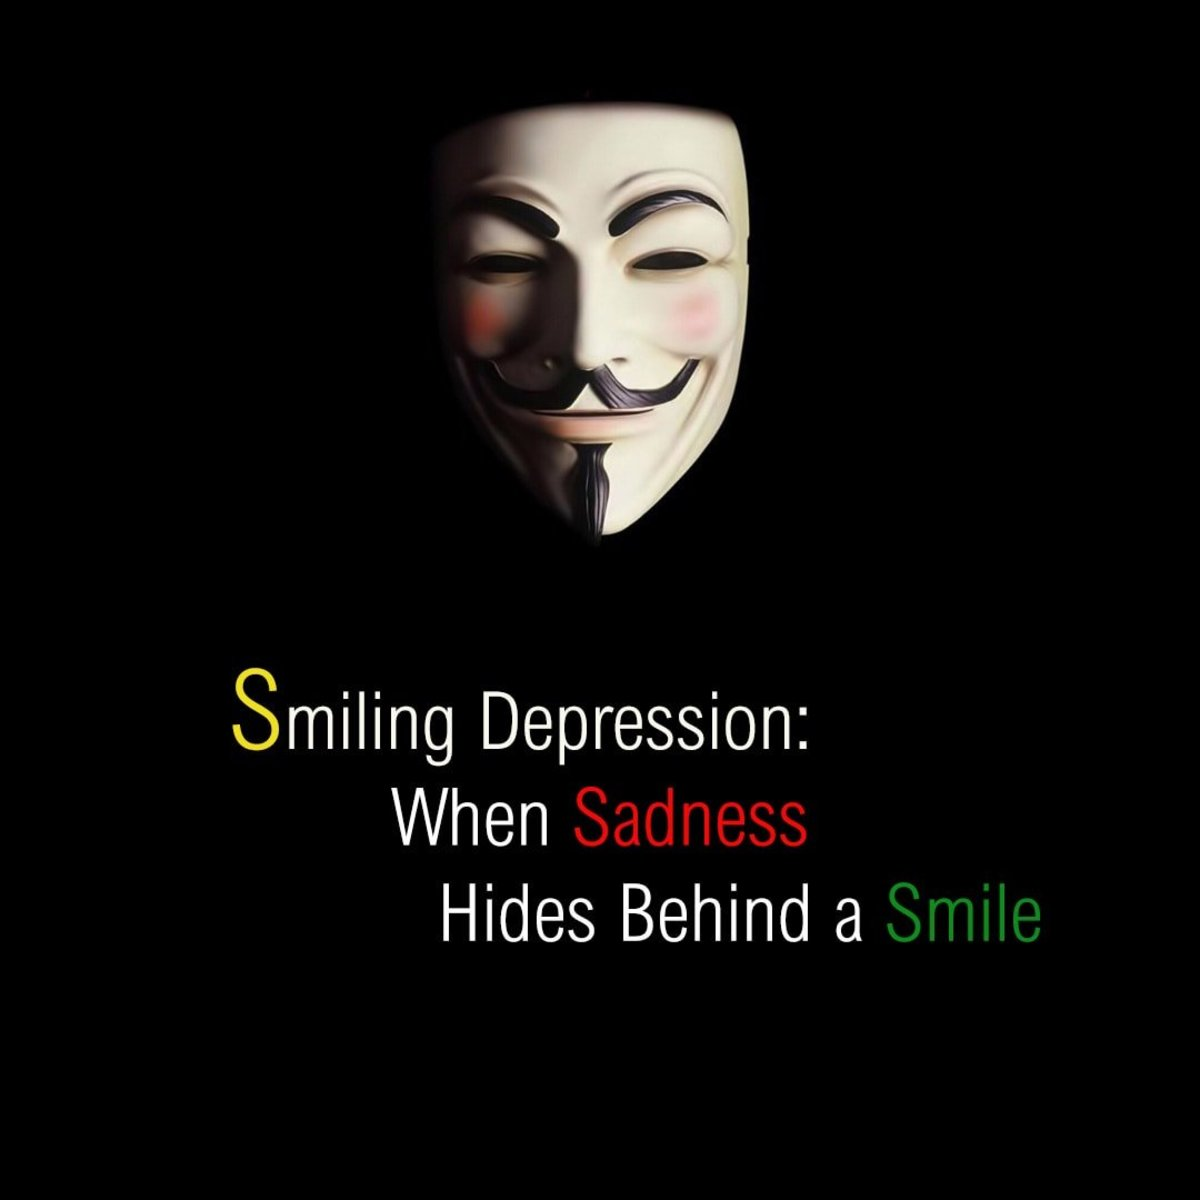 Smiling Depression: When Sadness Hides Behind a Smile